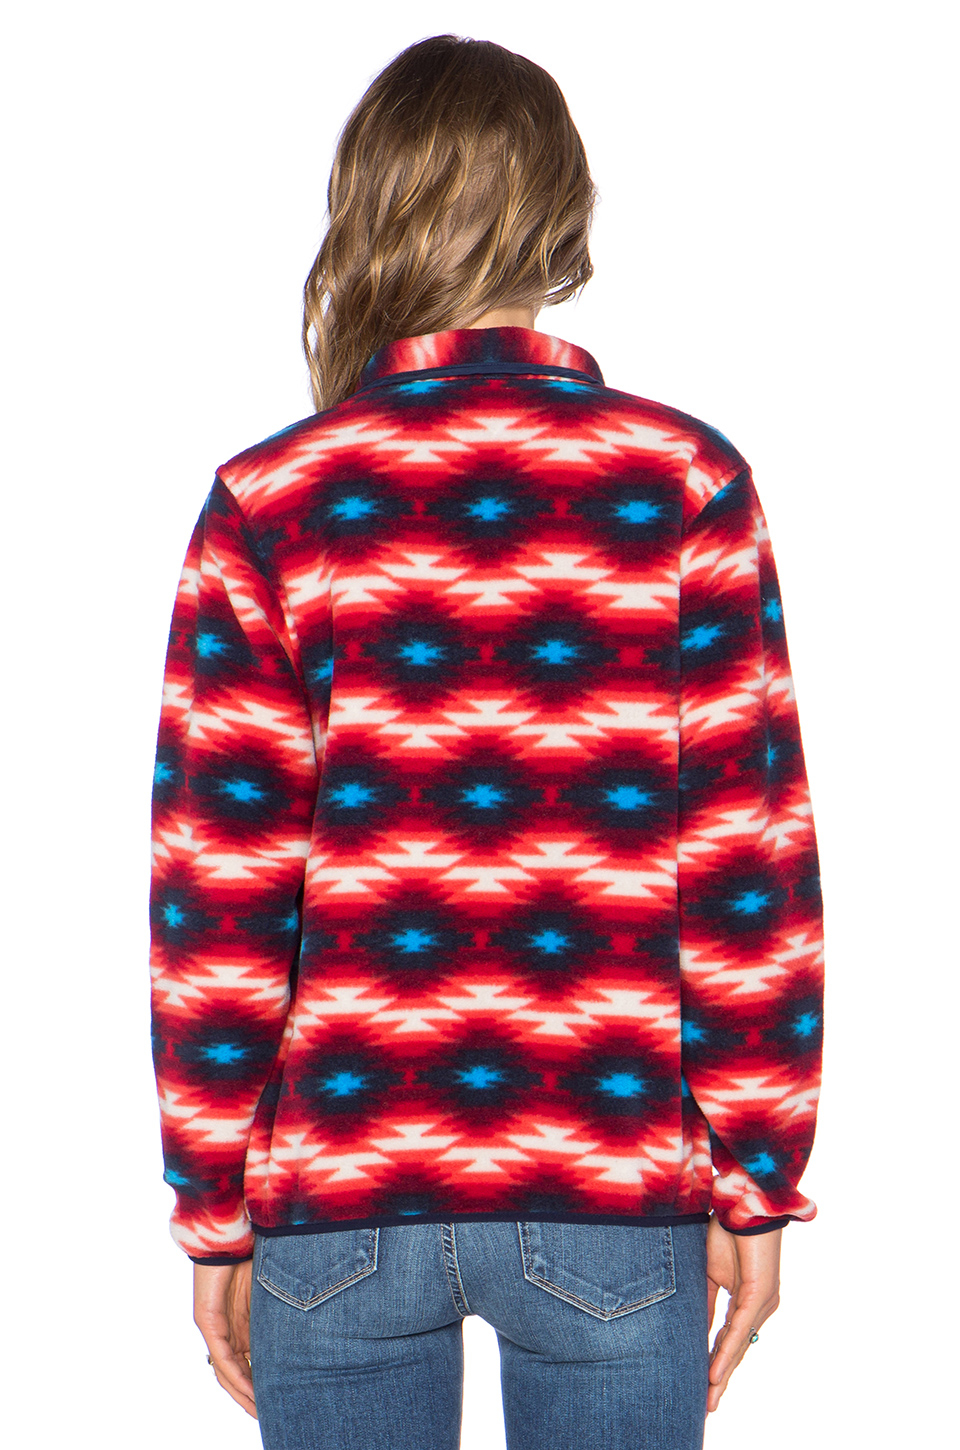 Patterned Patagonia Fleece Interesting Inspiration Ideas